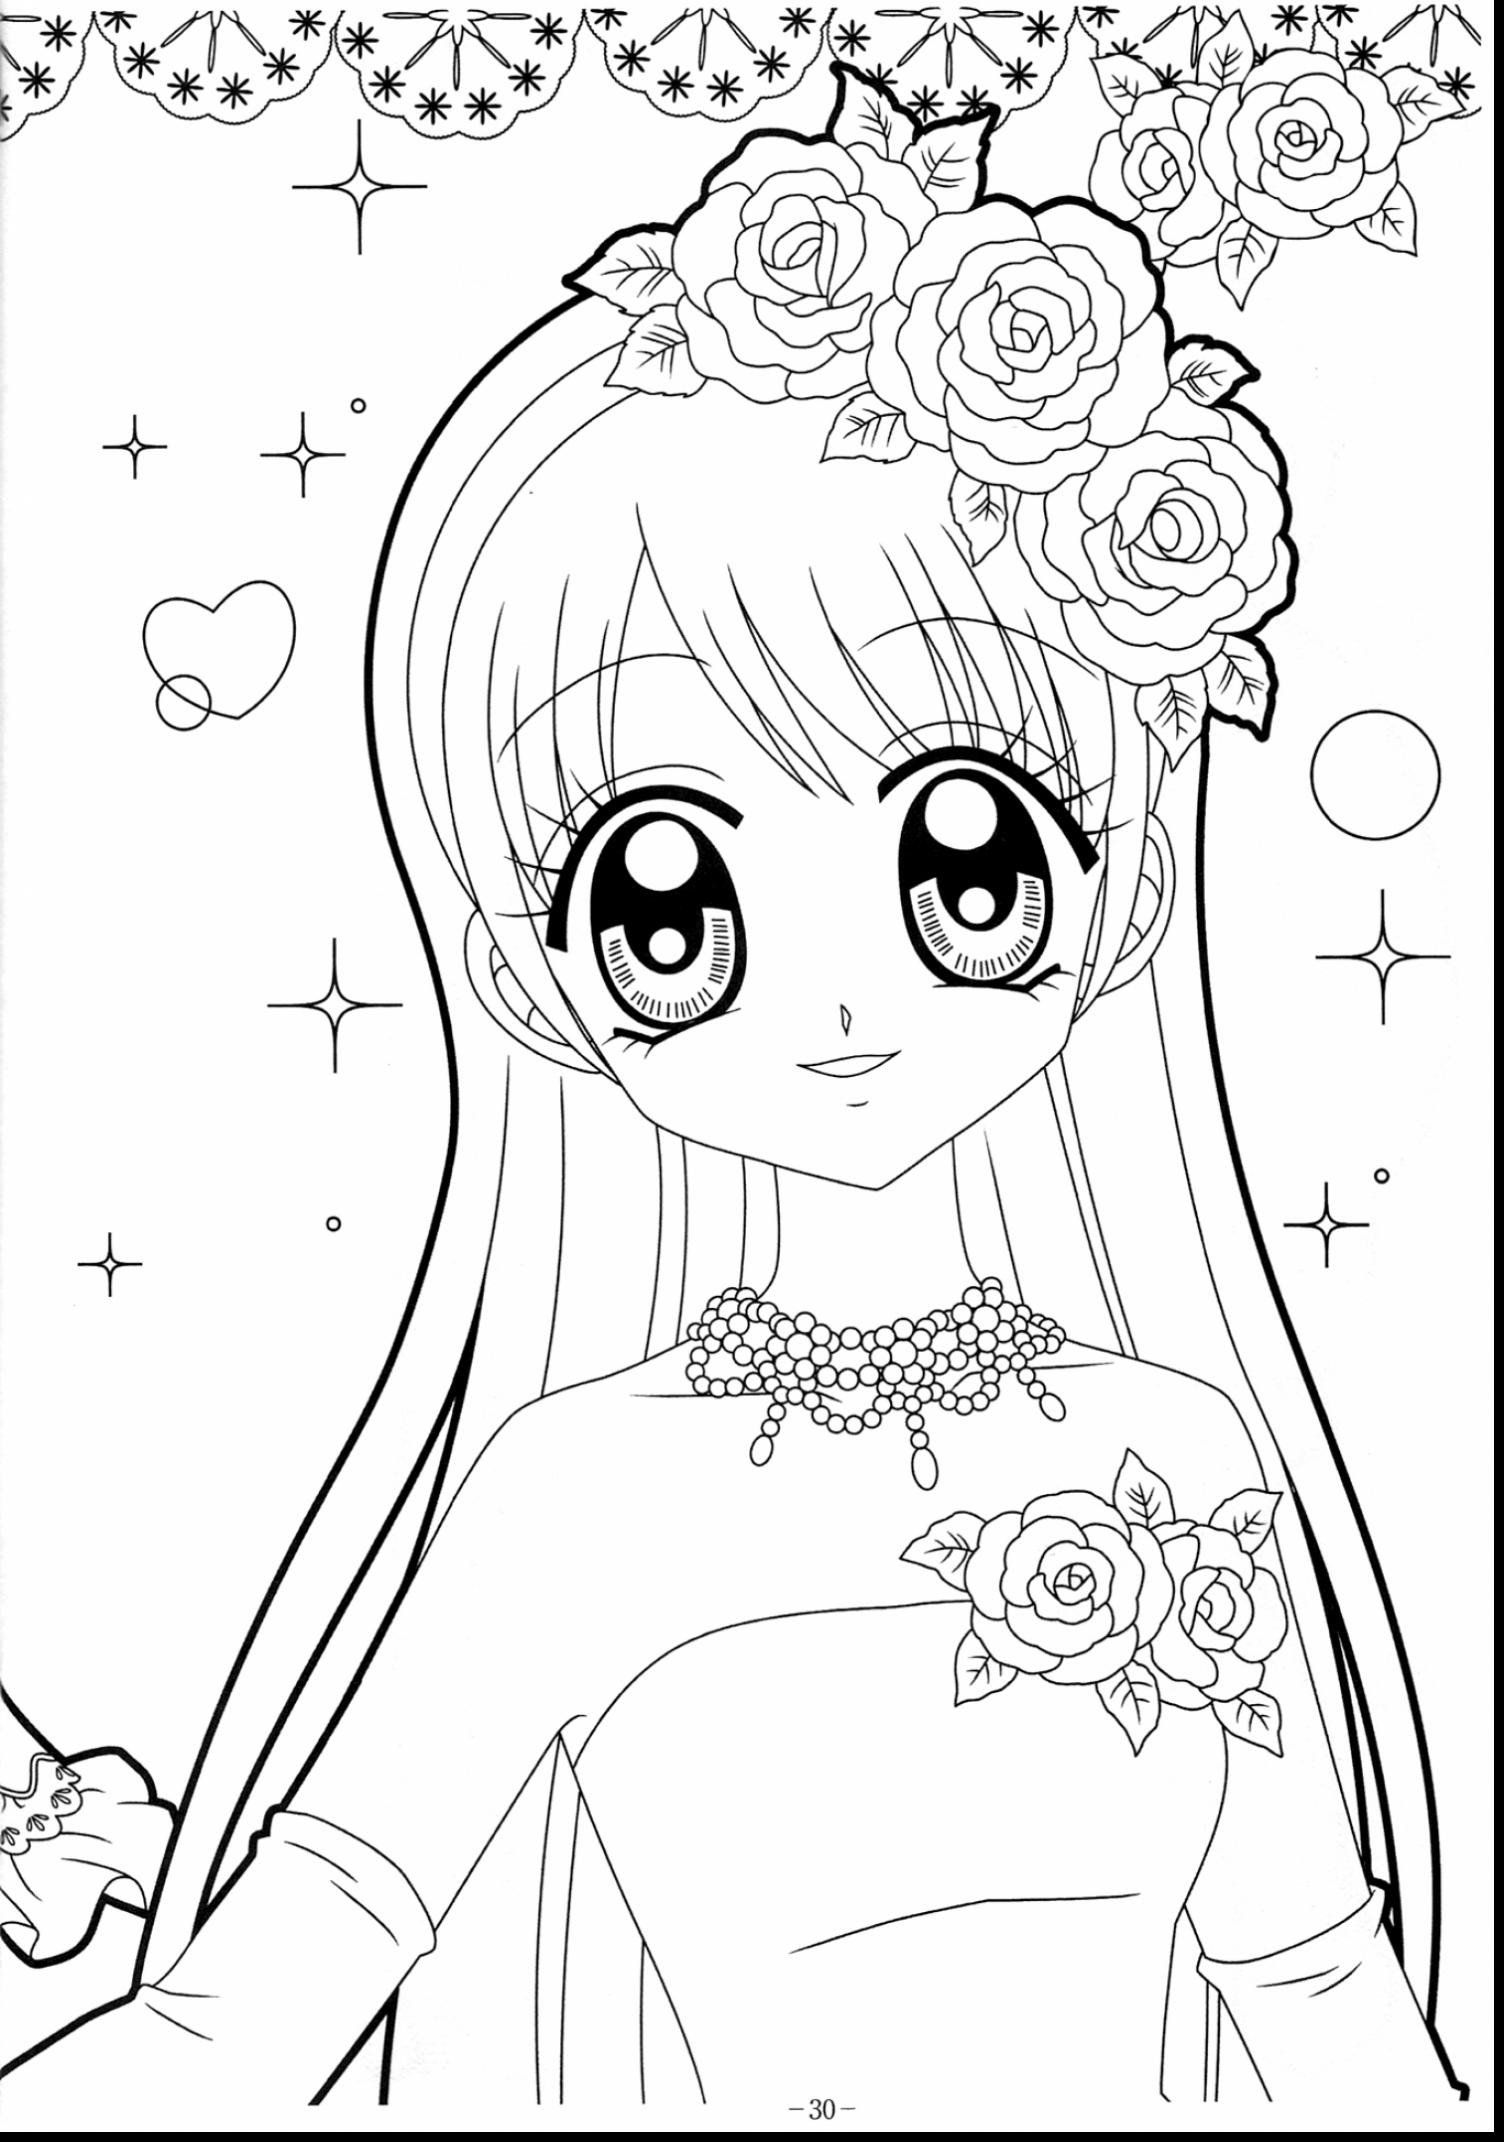 Cute Kawaii Girl Coloring Pages Coloring Book Kawaiiloring Pages To Print Picture Ideas Mermaid Coloring Pages Cute Coloring Pages Coloring Pages For Girls